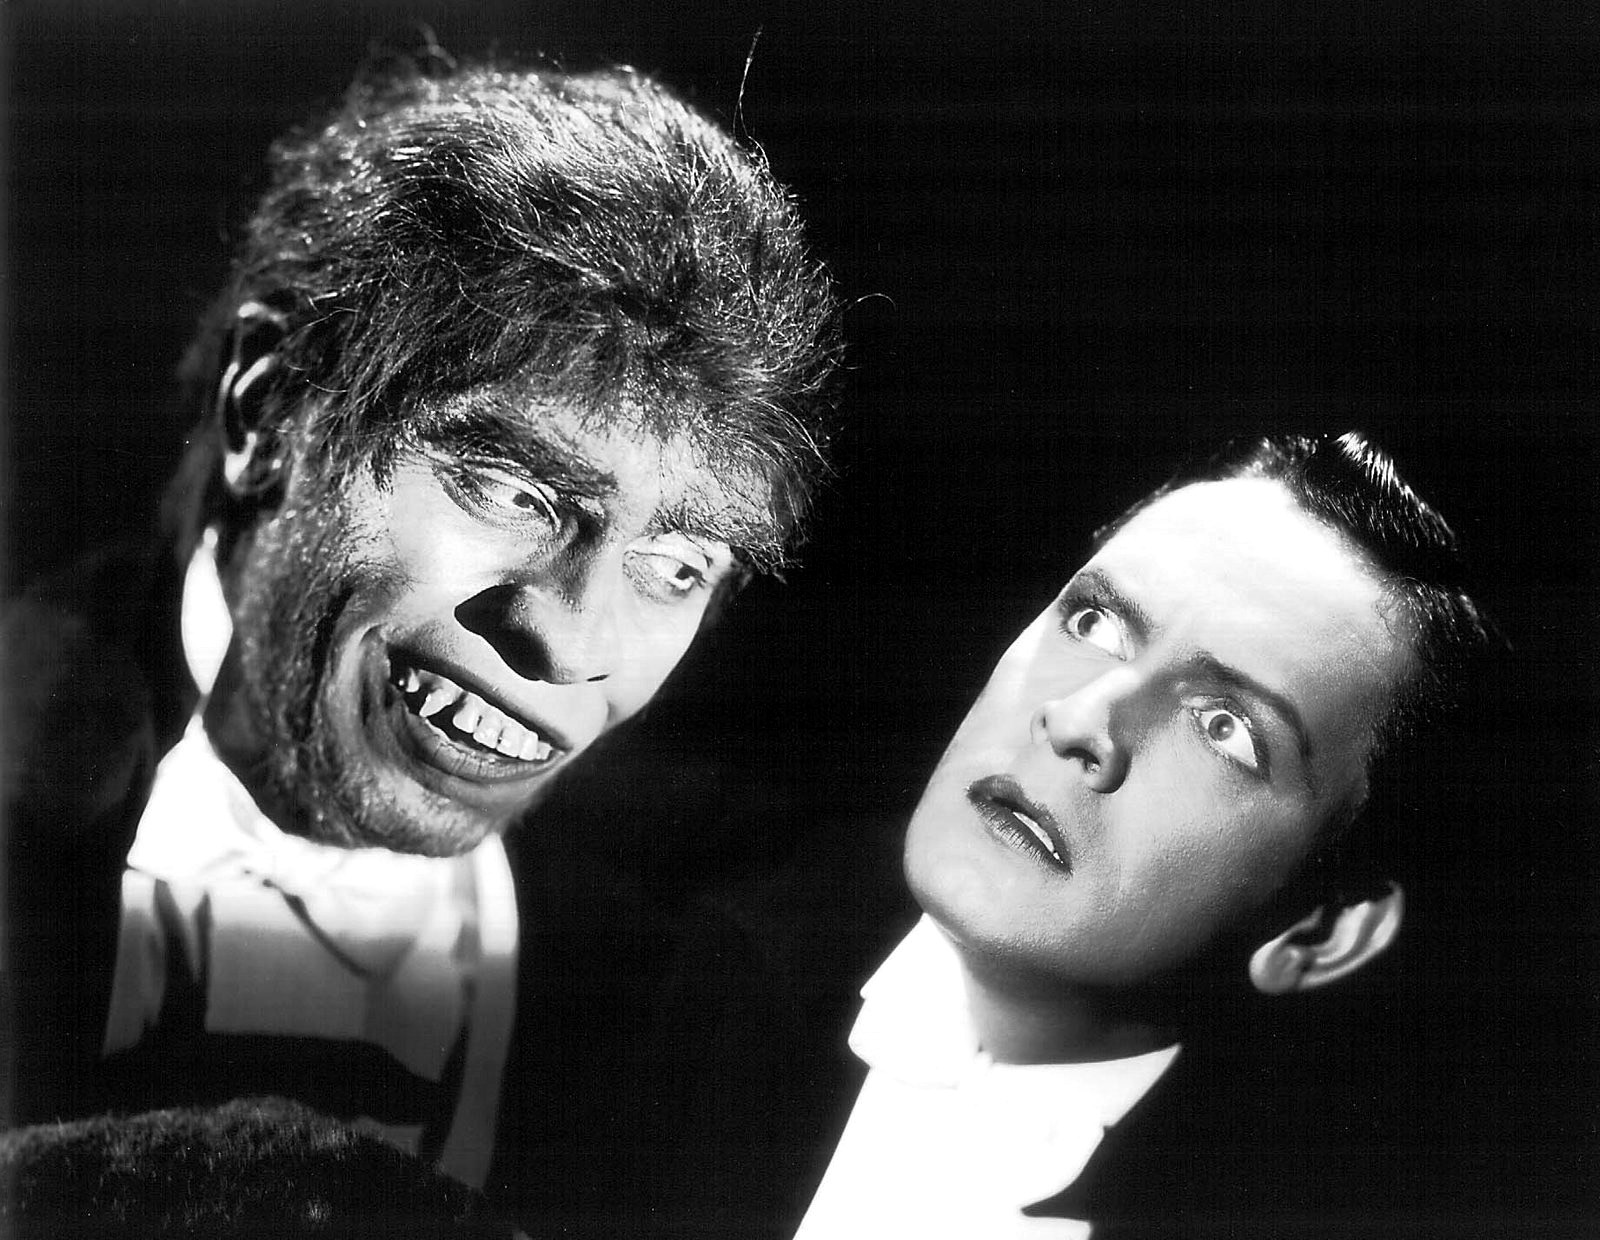 Screen grab from the 1931 movie Dr. Jekyll and Mr. Hide public domain